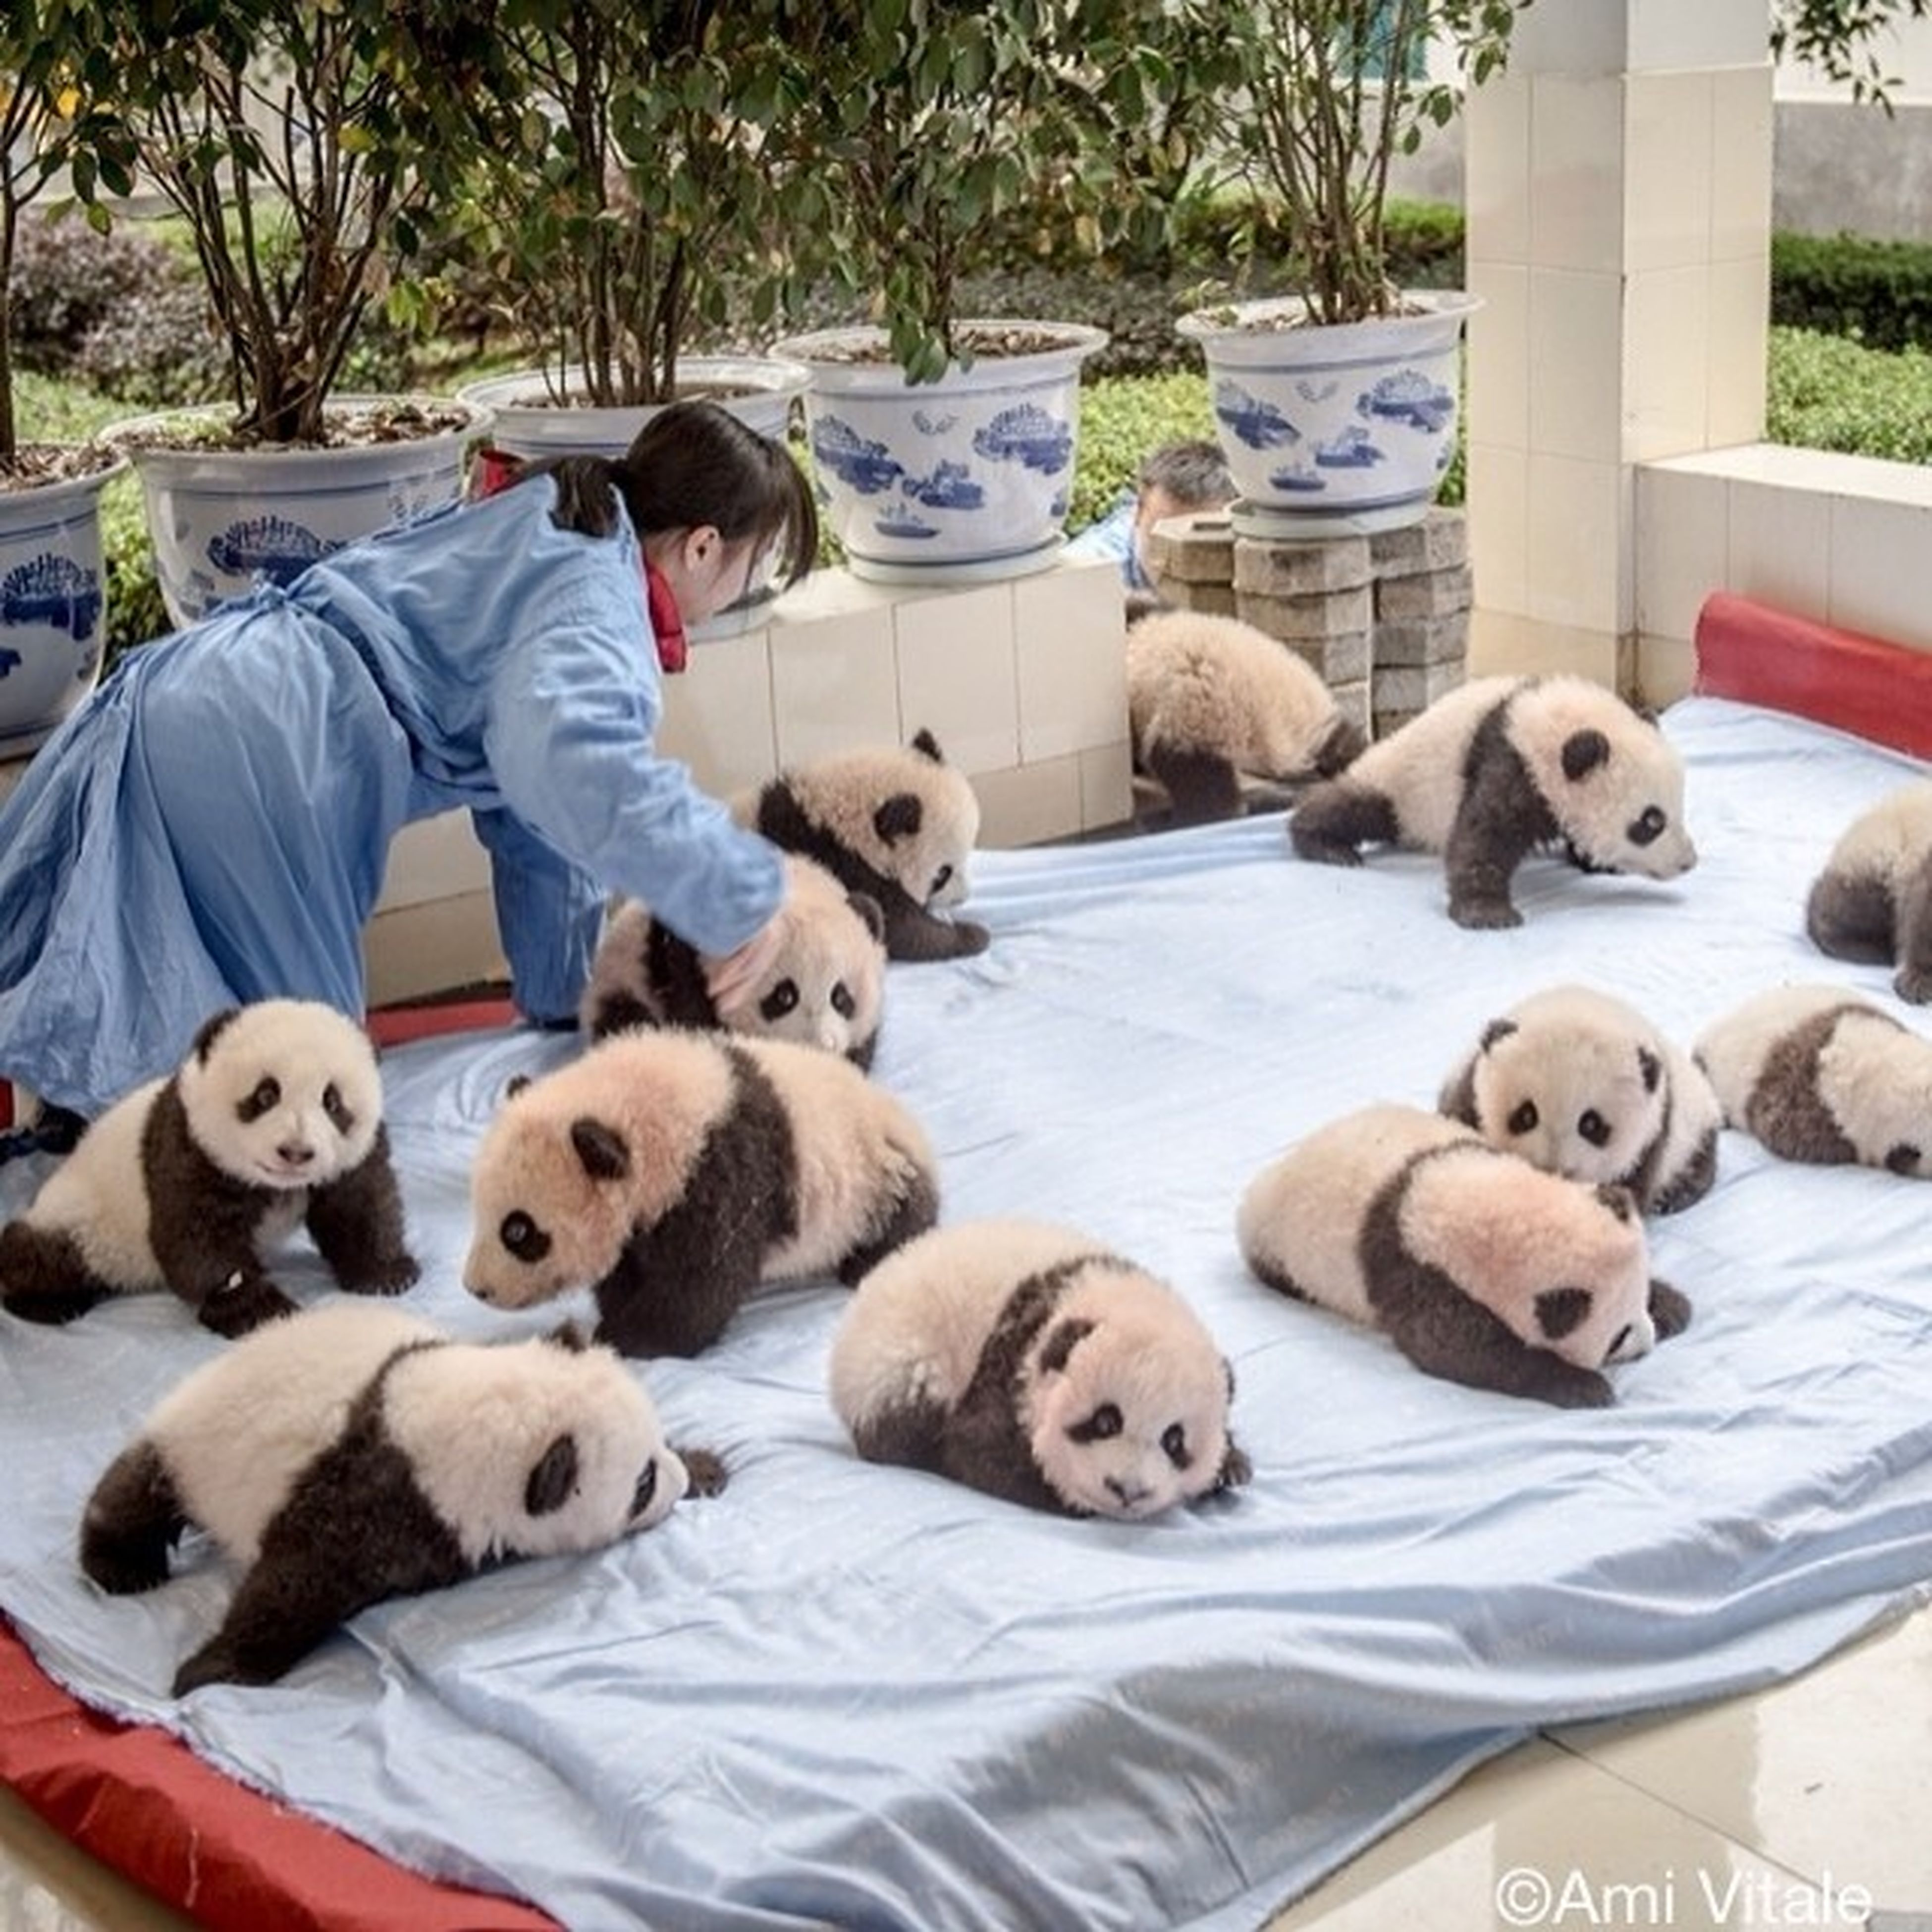 animal themes, domestic animals, relaxation, lying down, mammal, resting, pets, togetherness, two animals, relaxing, dog, portrait, day, looking at camera, sitting, stuffed toy, sleeping, field, high angle view, outdoors